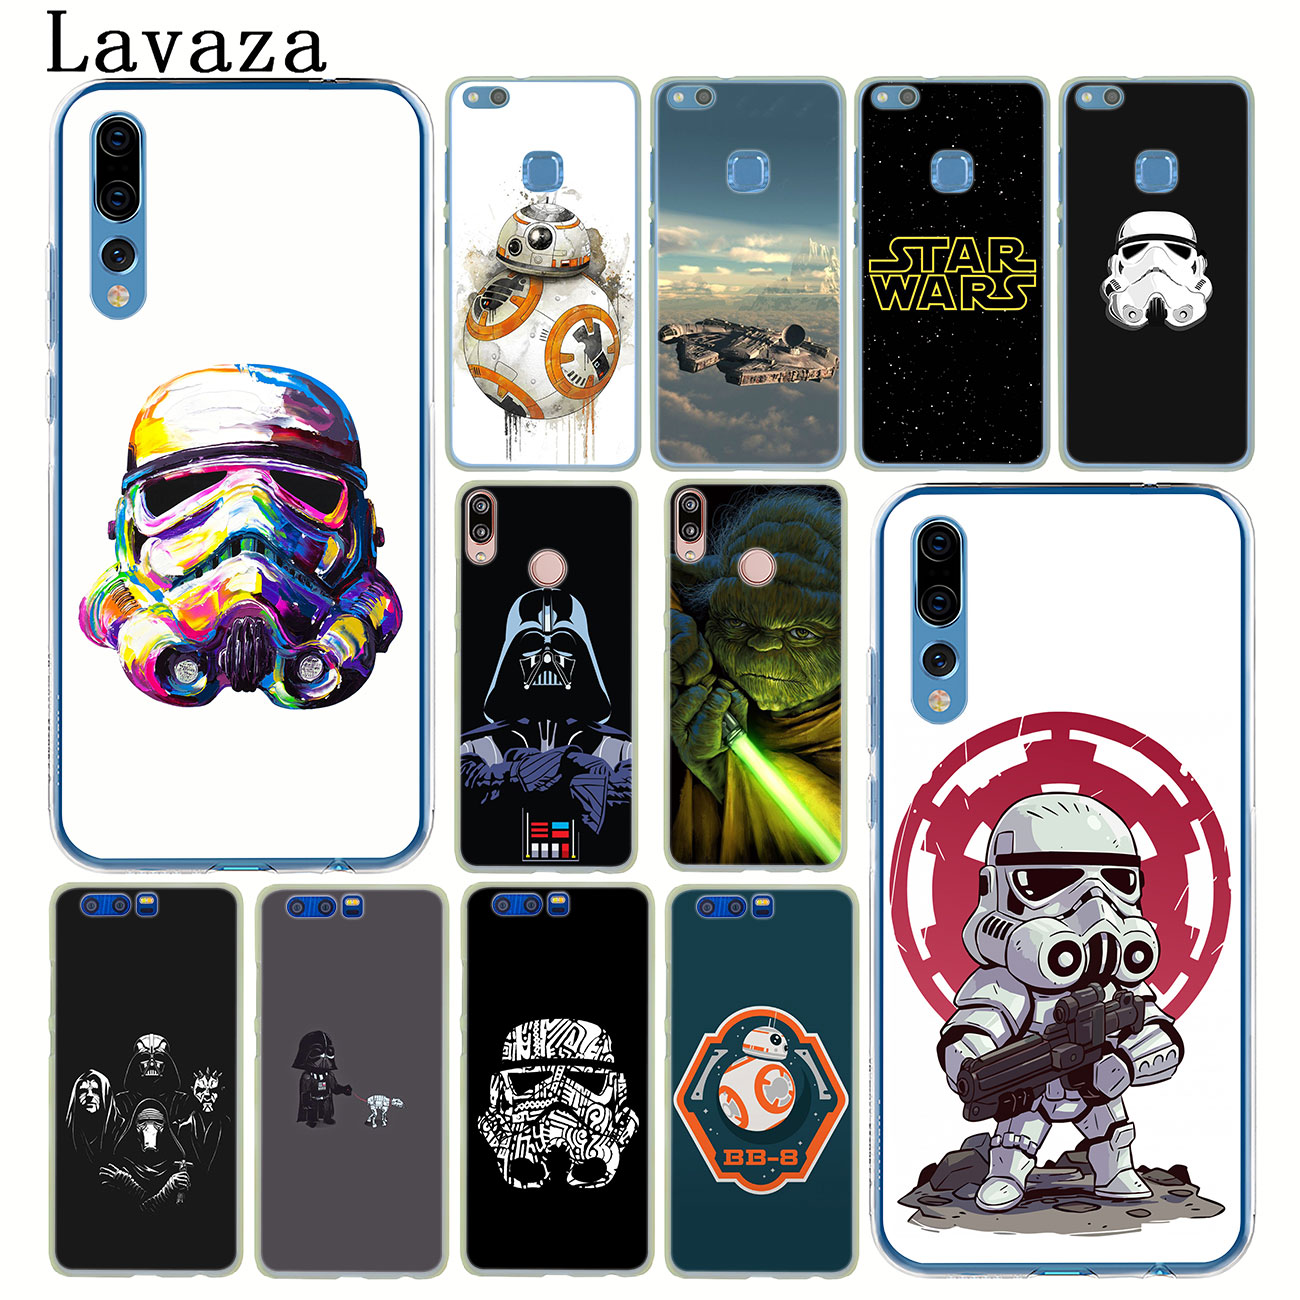 top 10 huawei star wars case ideas and get free shipping - bca69hc8